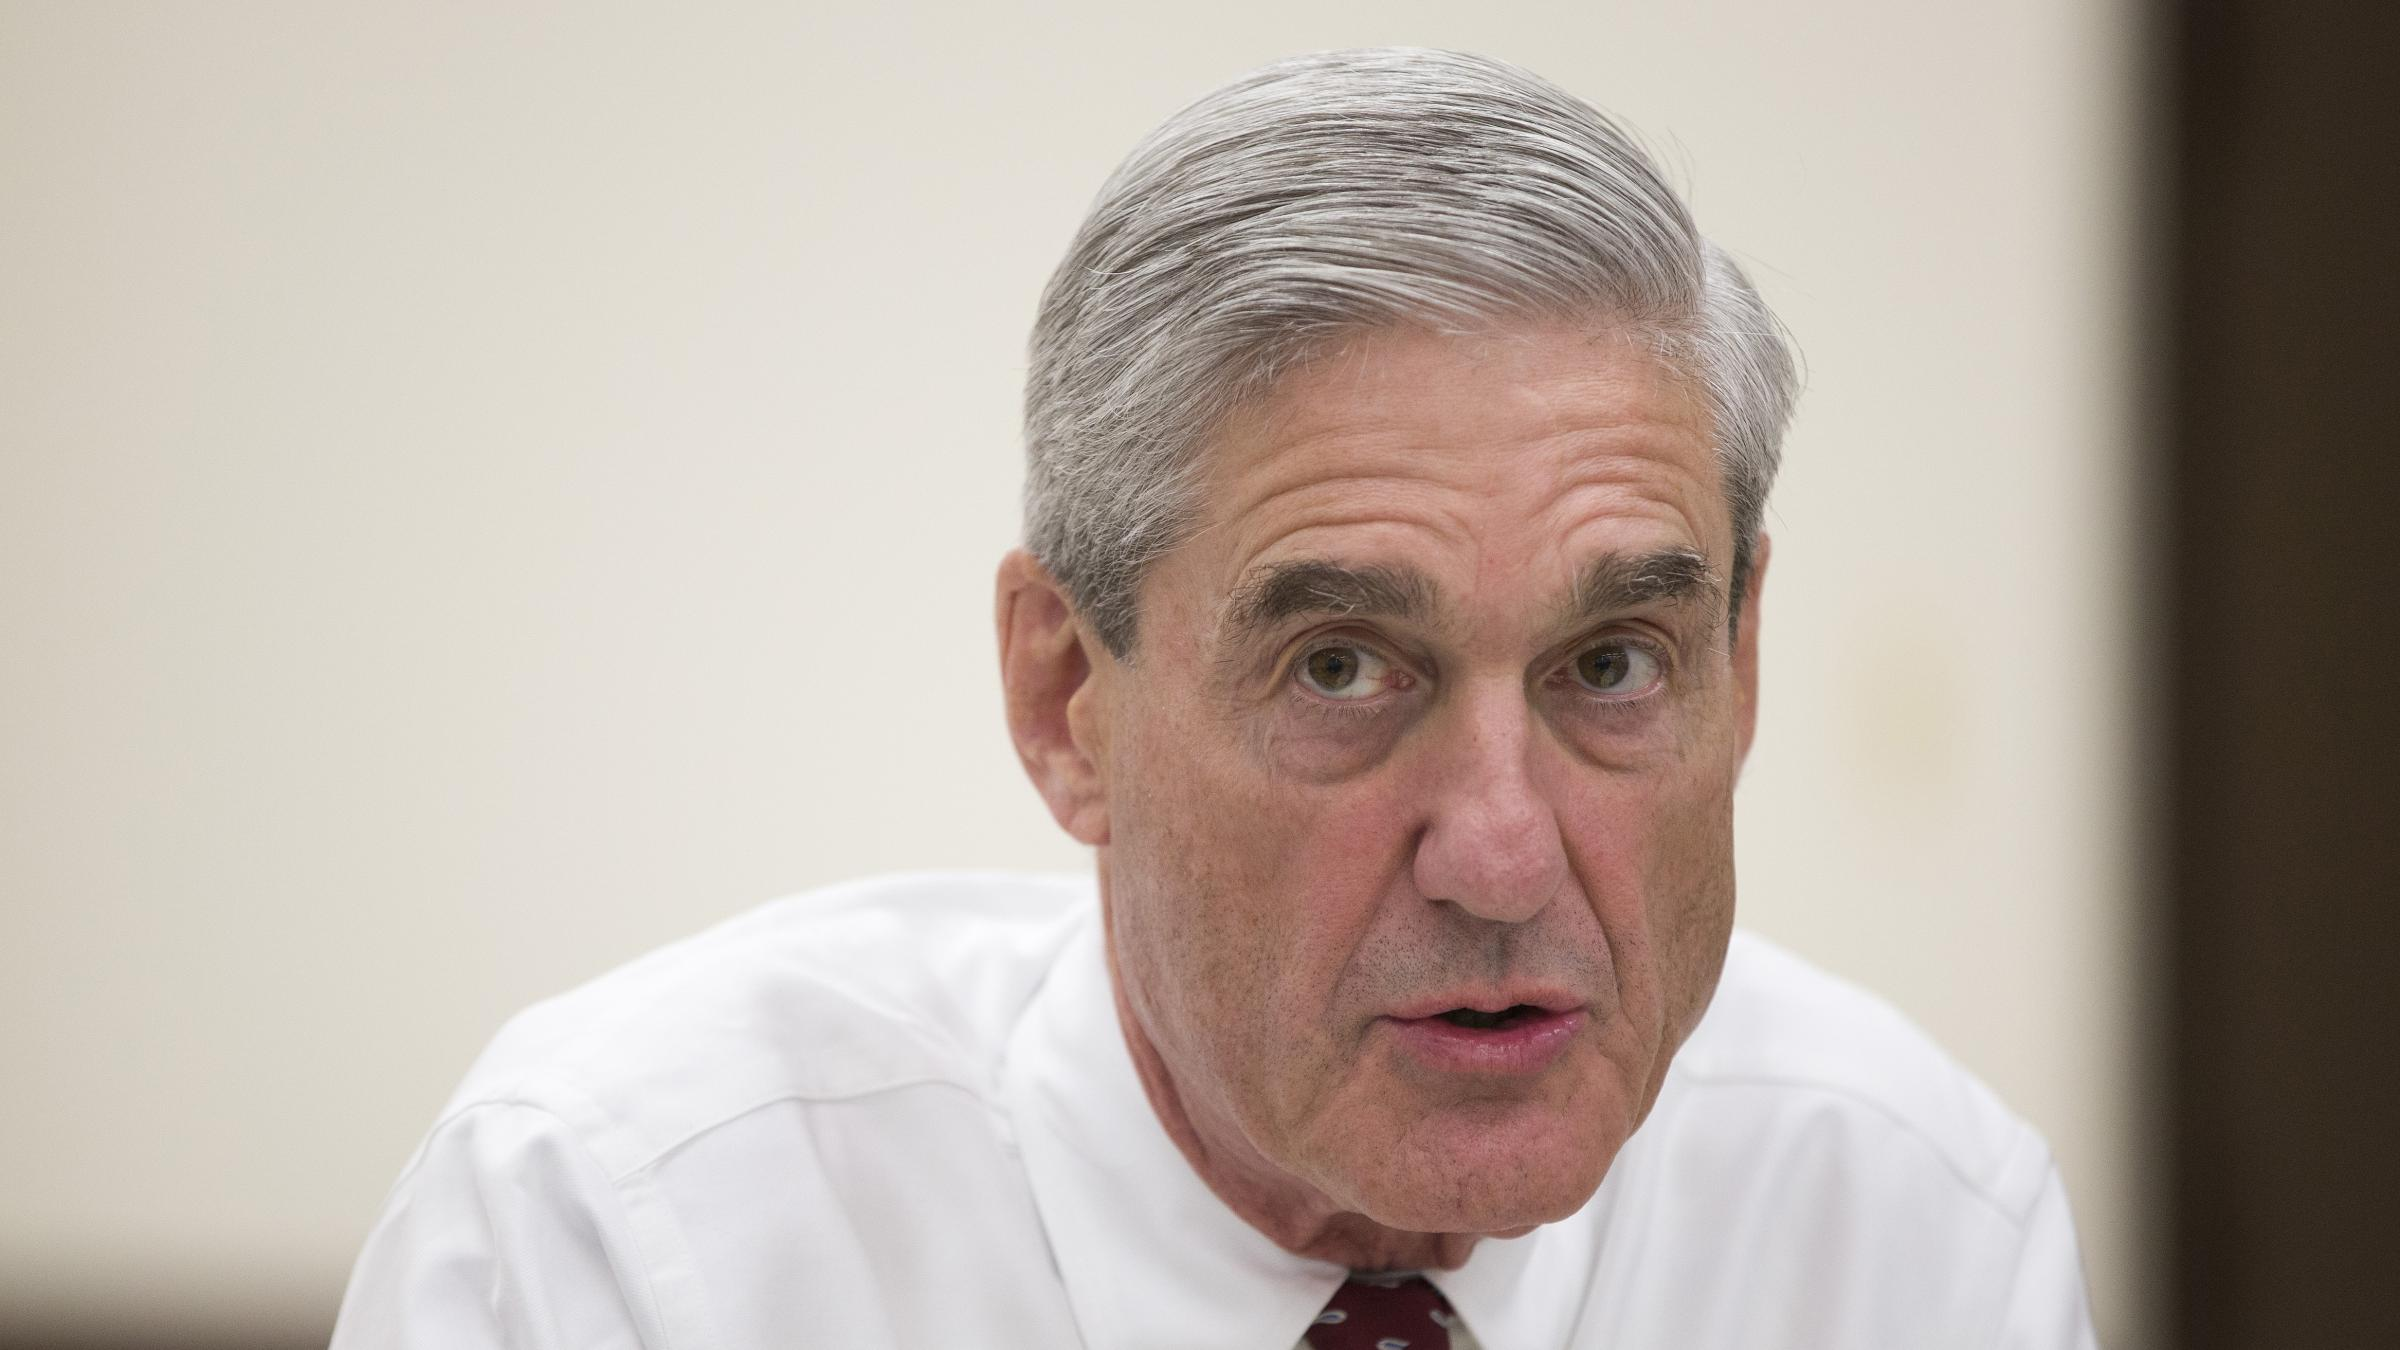 Trump is considering firing special counsel Mueller, friend says